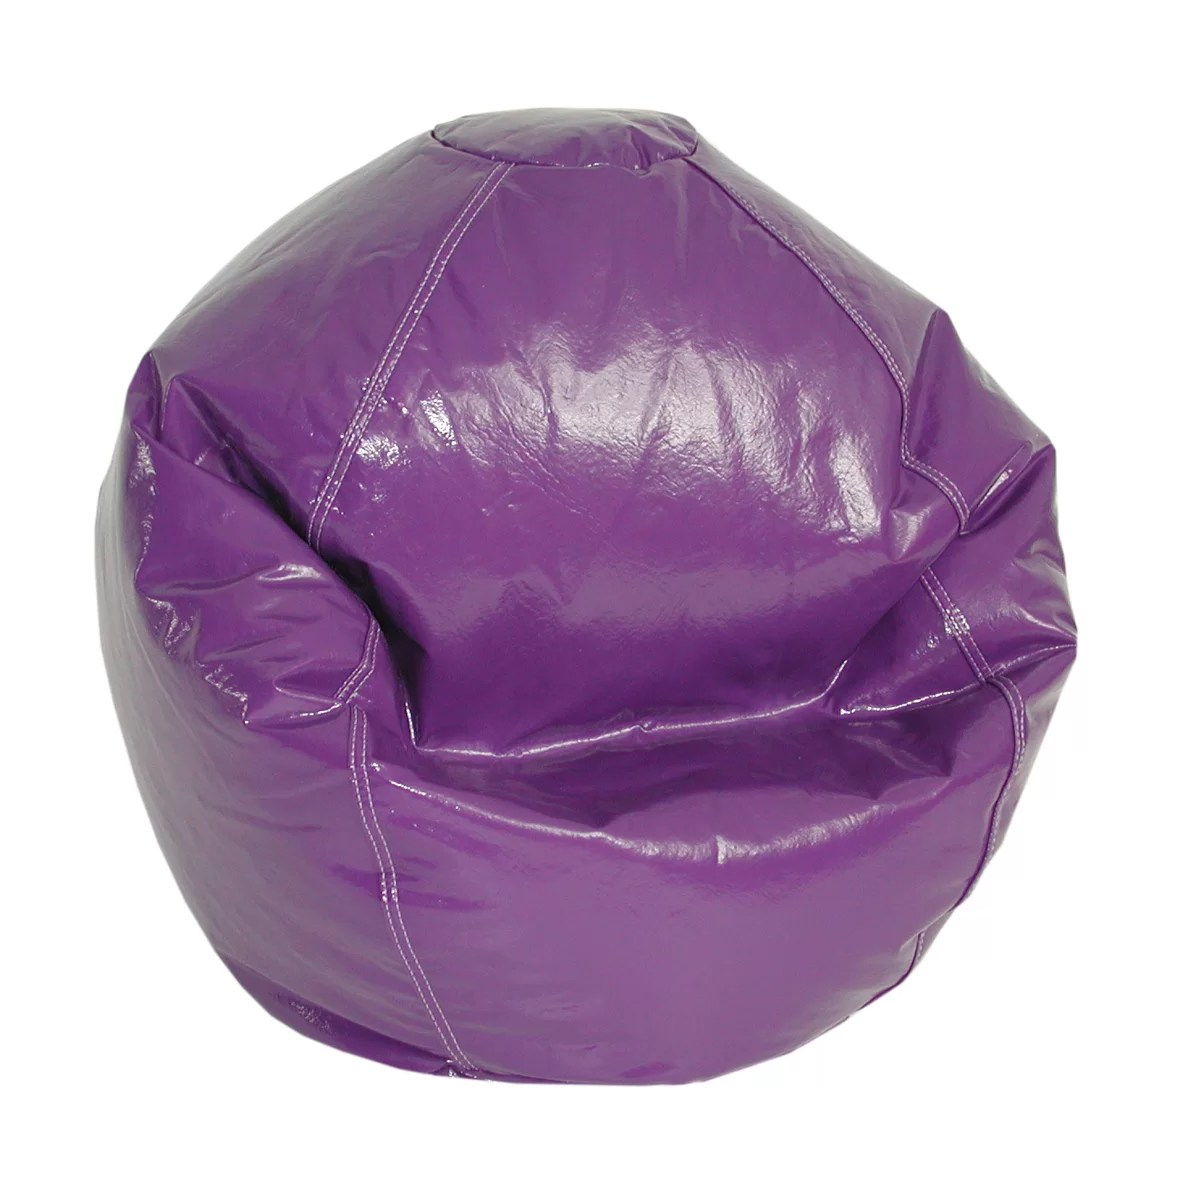 Bean Bags Chair Elite Products Wetlook Bean Bag Chair And Reviews Wayfair